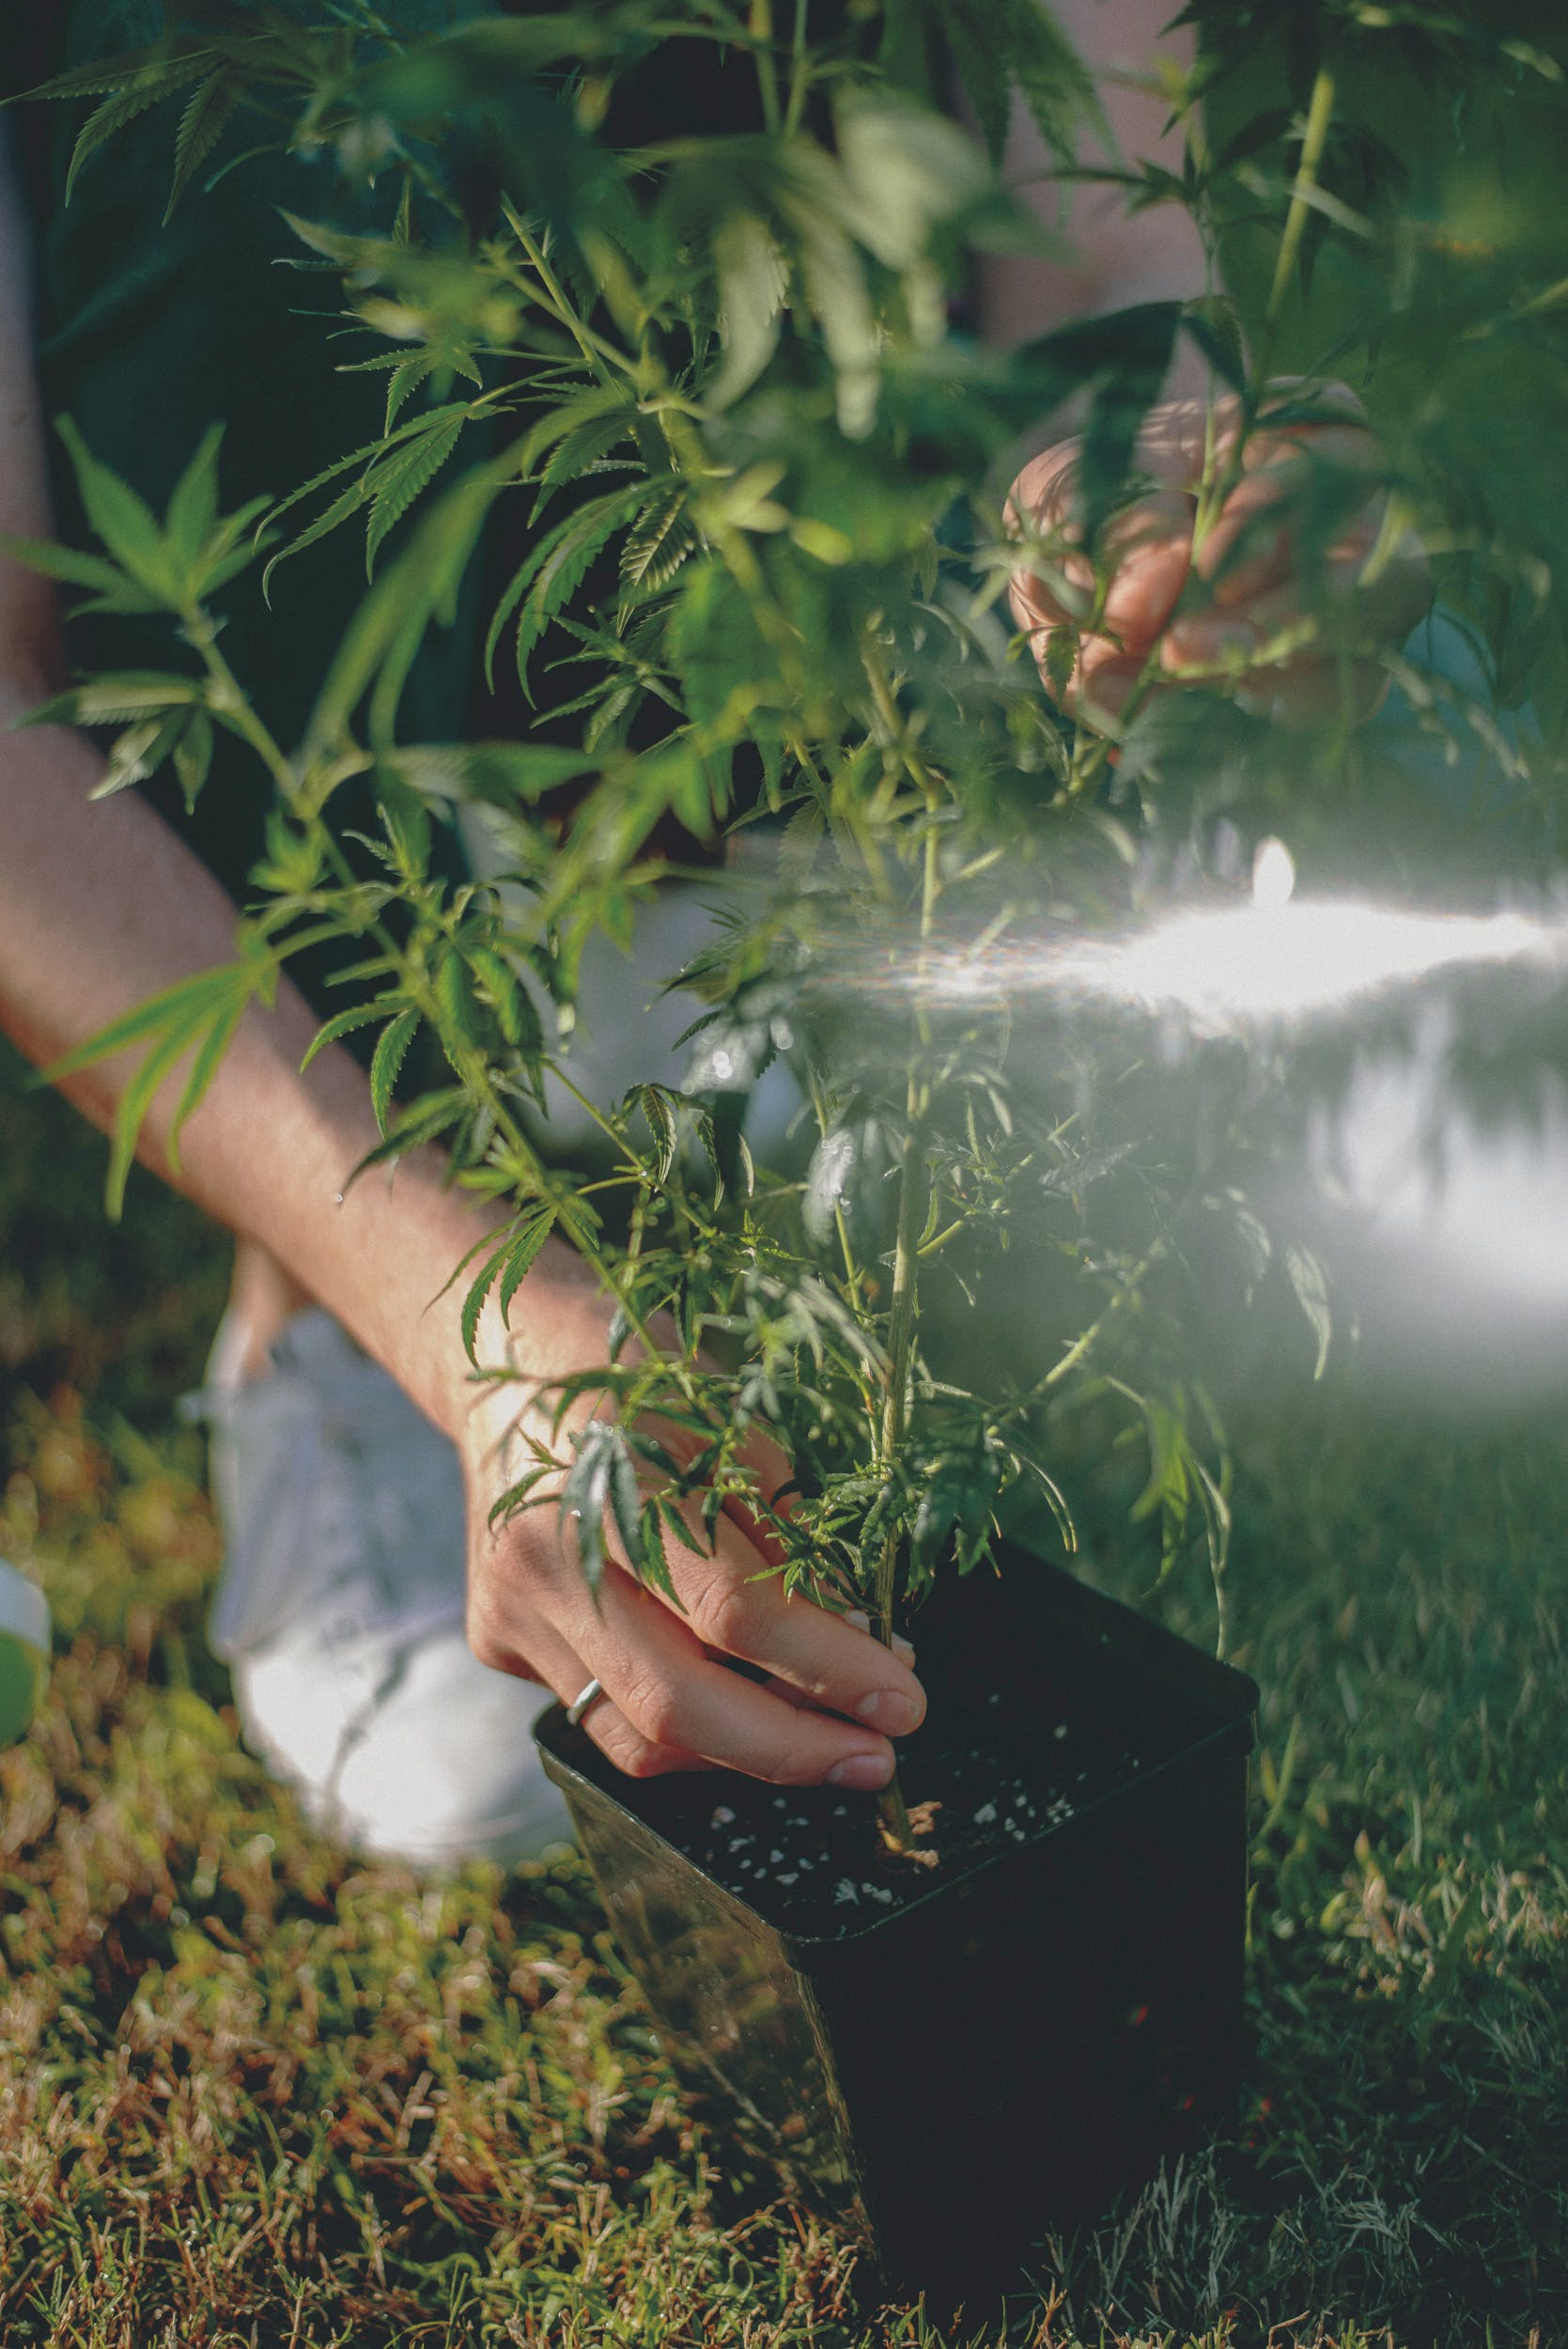 Best Weed Fertilizer 39 Grow Like a Pro with the Best Weed Fertilizers